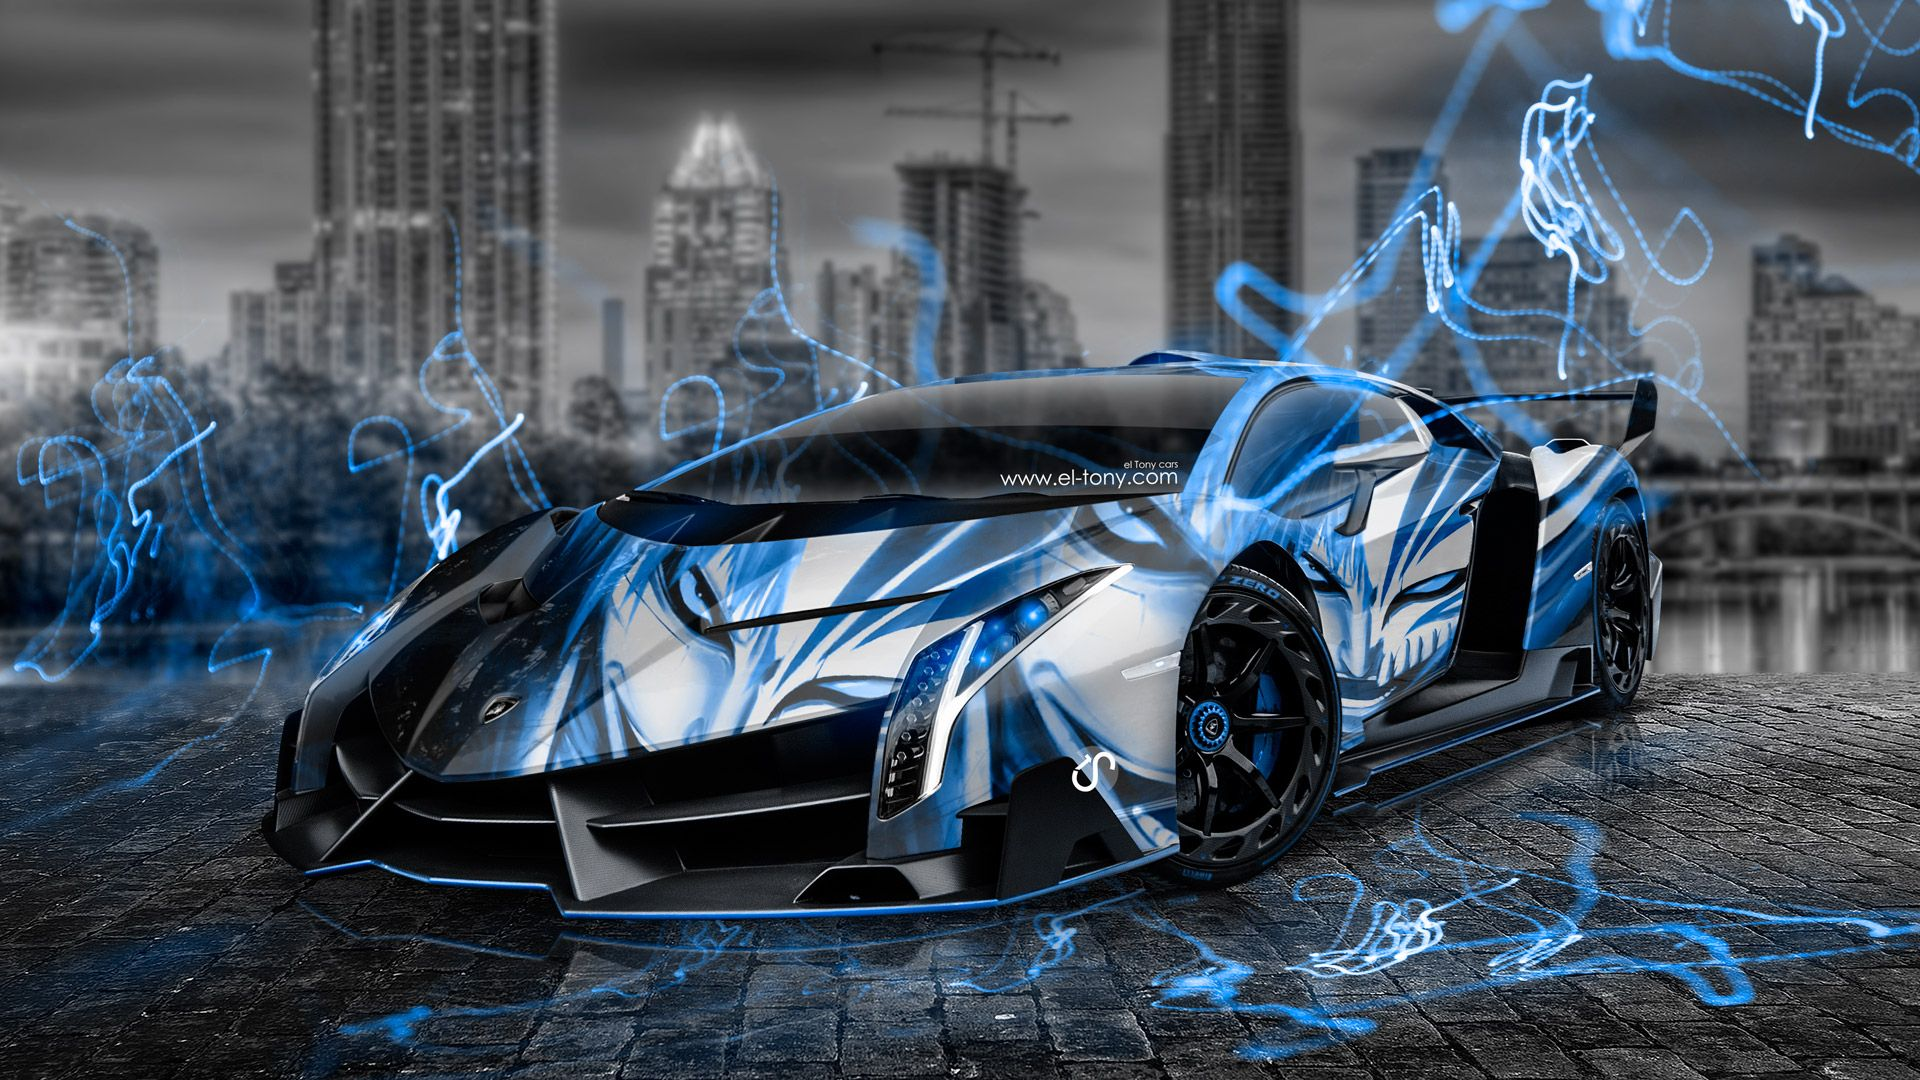 Neon Lamborghini Wallpapers Top Free Neon Lamborghini Backgrounds Wallpaperaccess